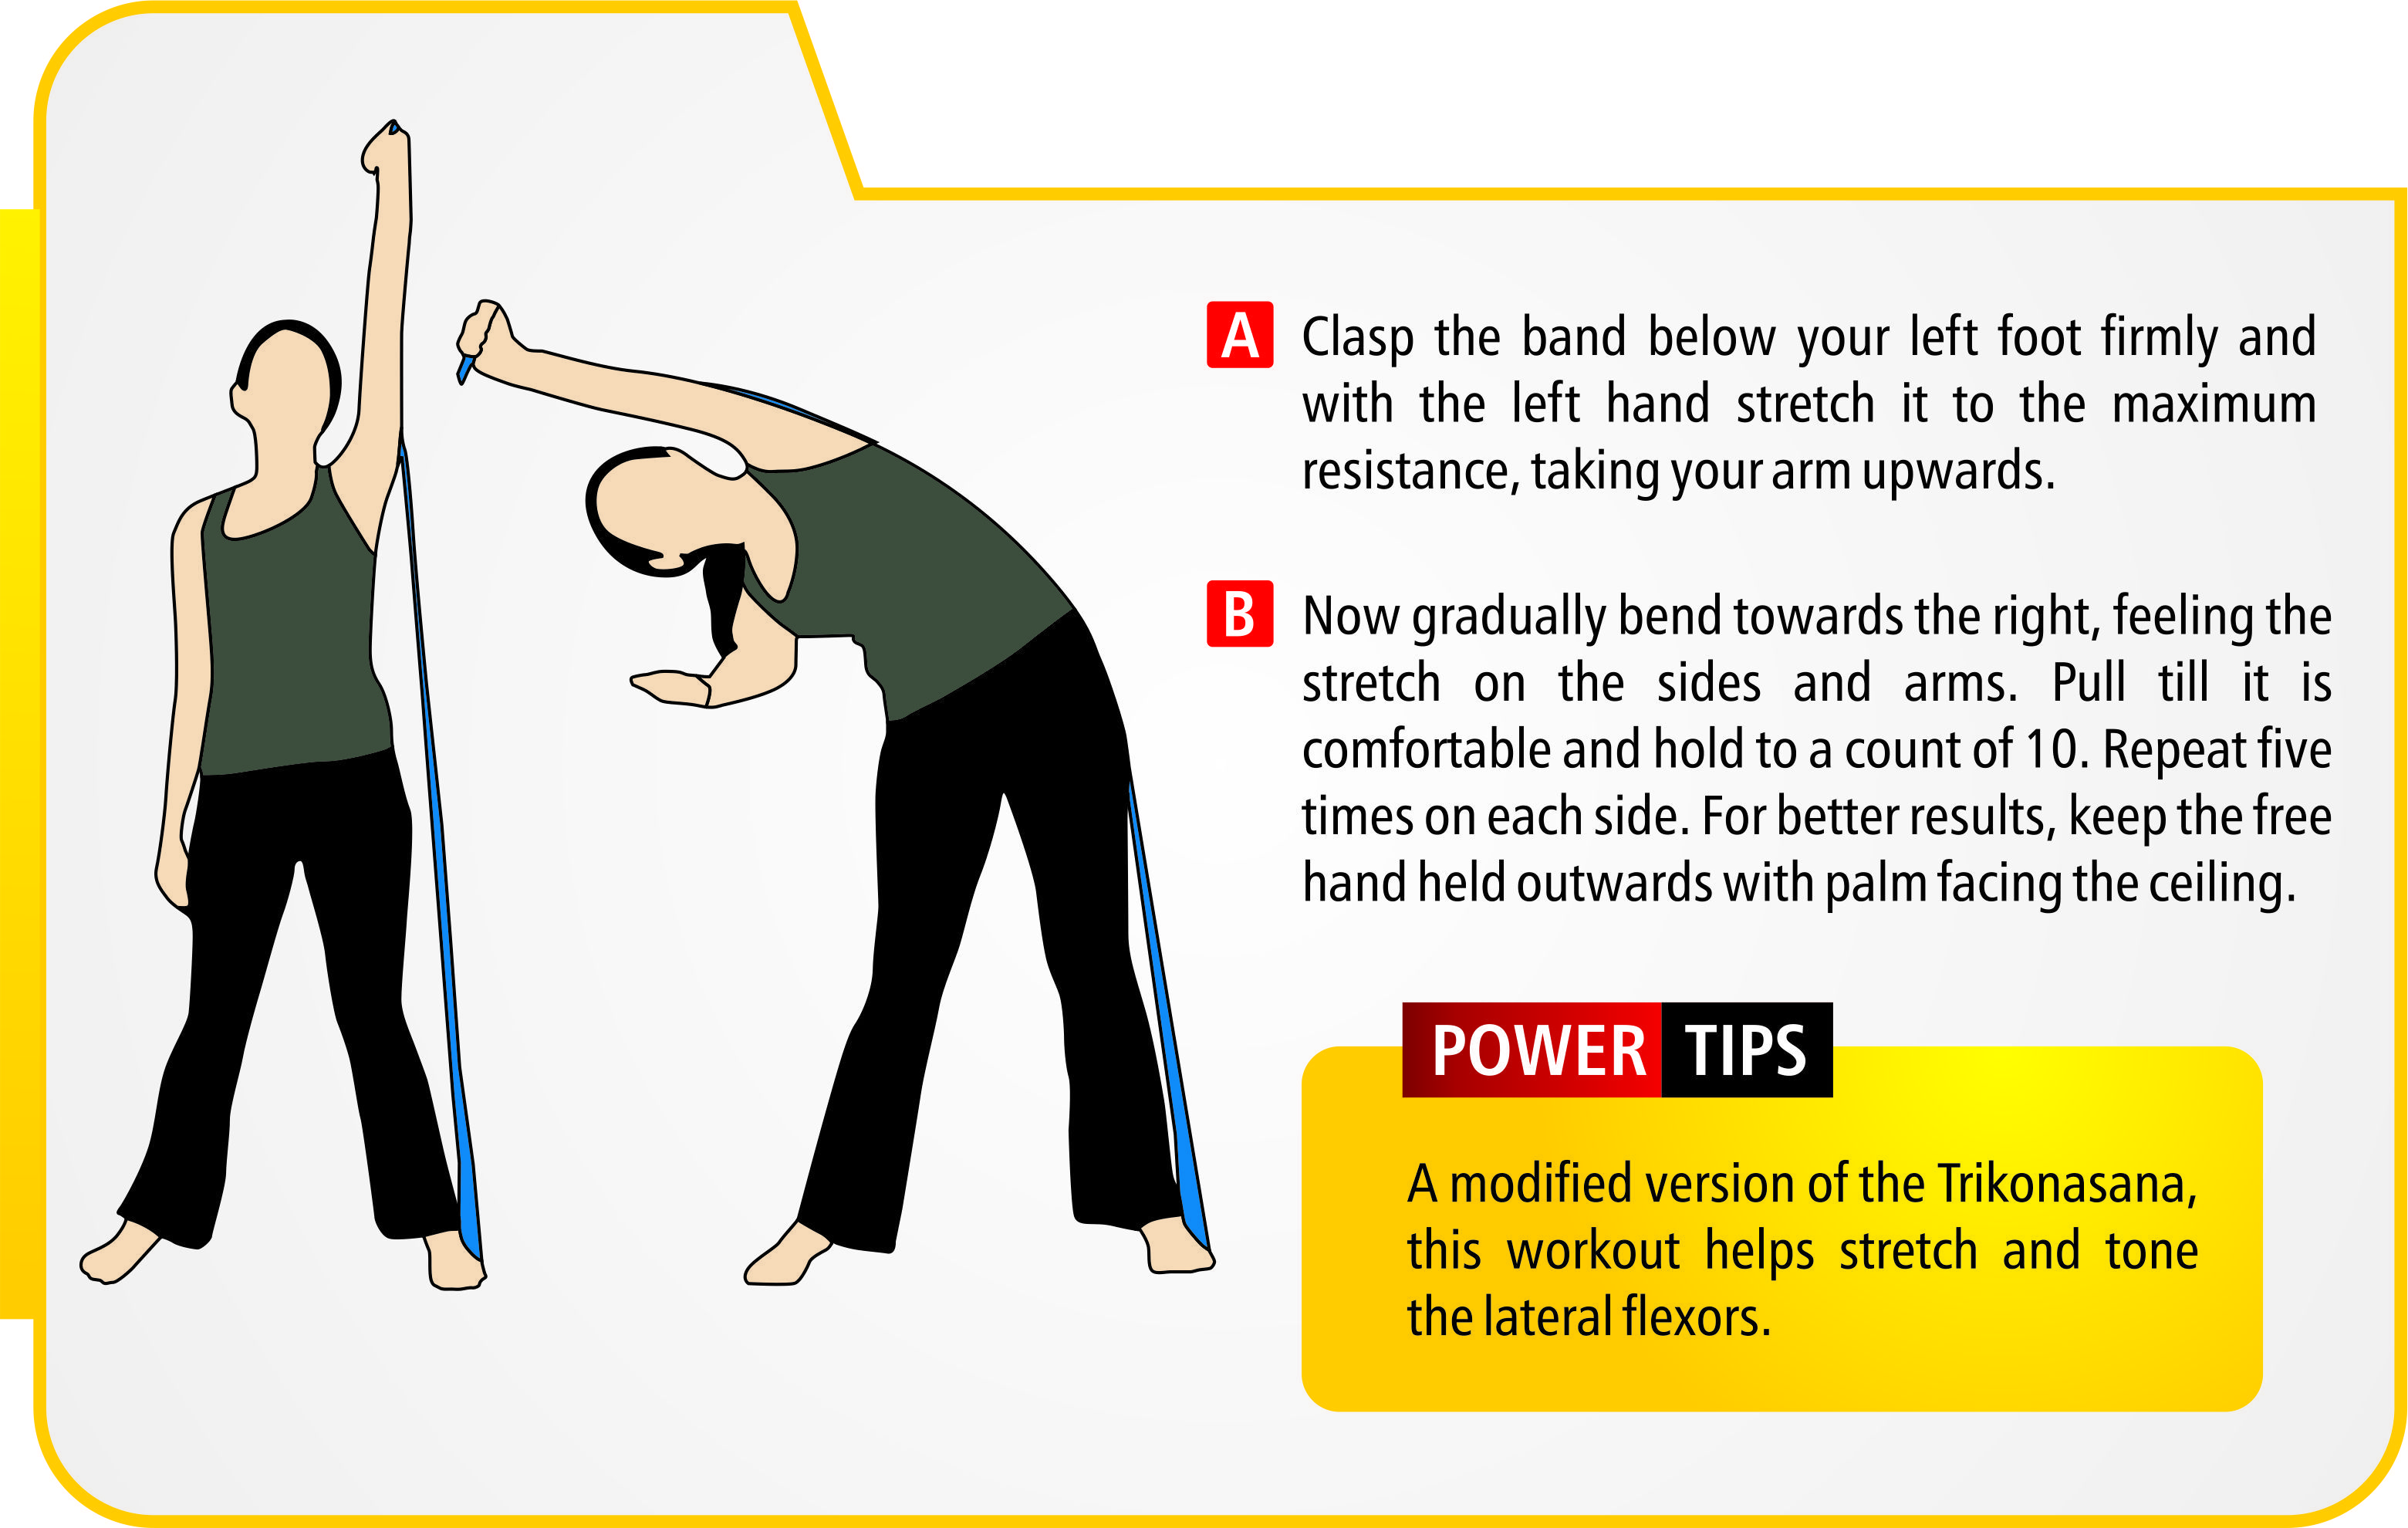 Lateral flexors (exercise / resistance bands should be used under professional supervision & guidance).